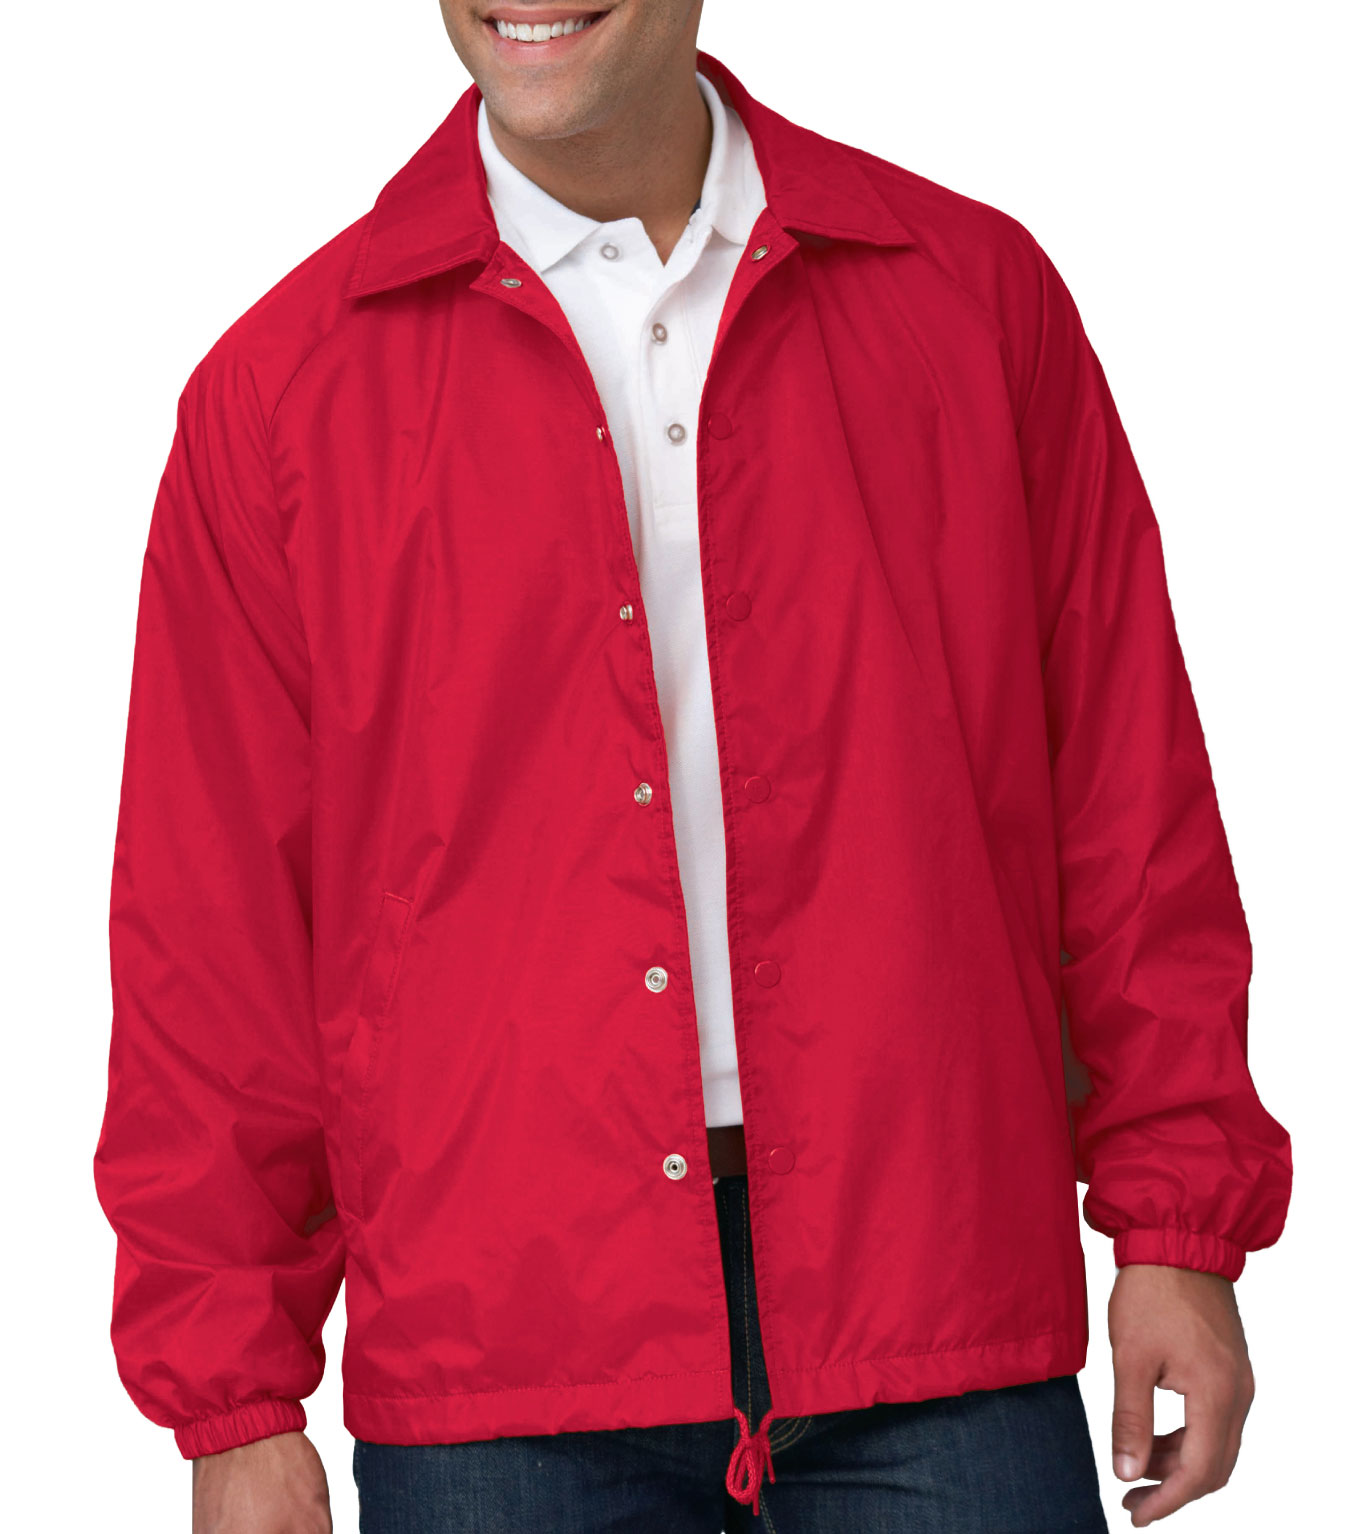 Adult Coaches Windbreaker Jacket